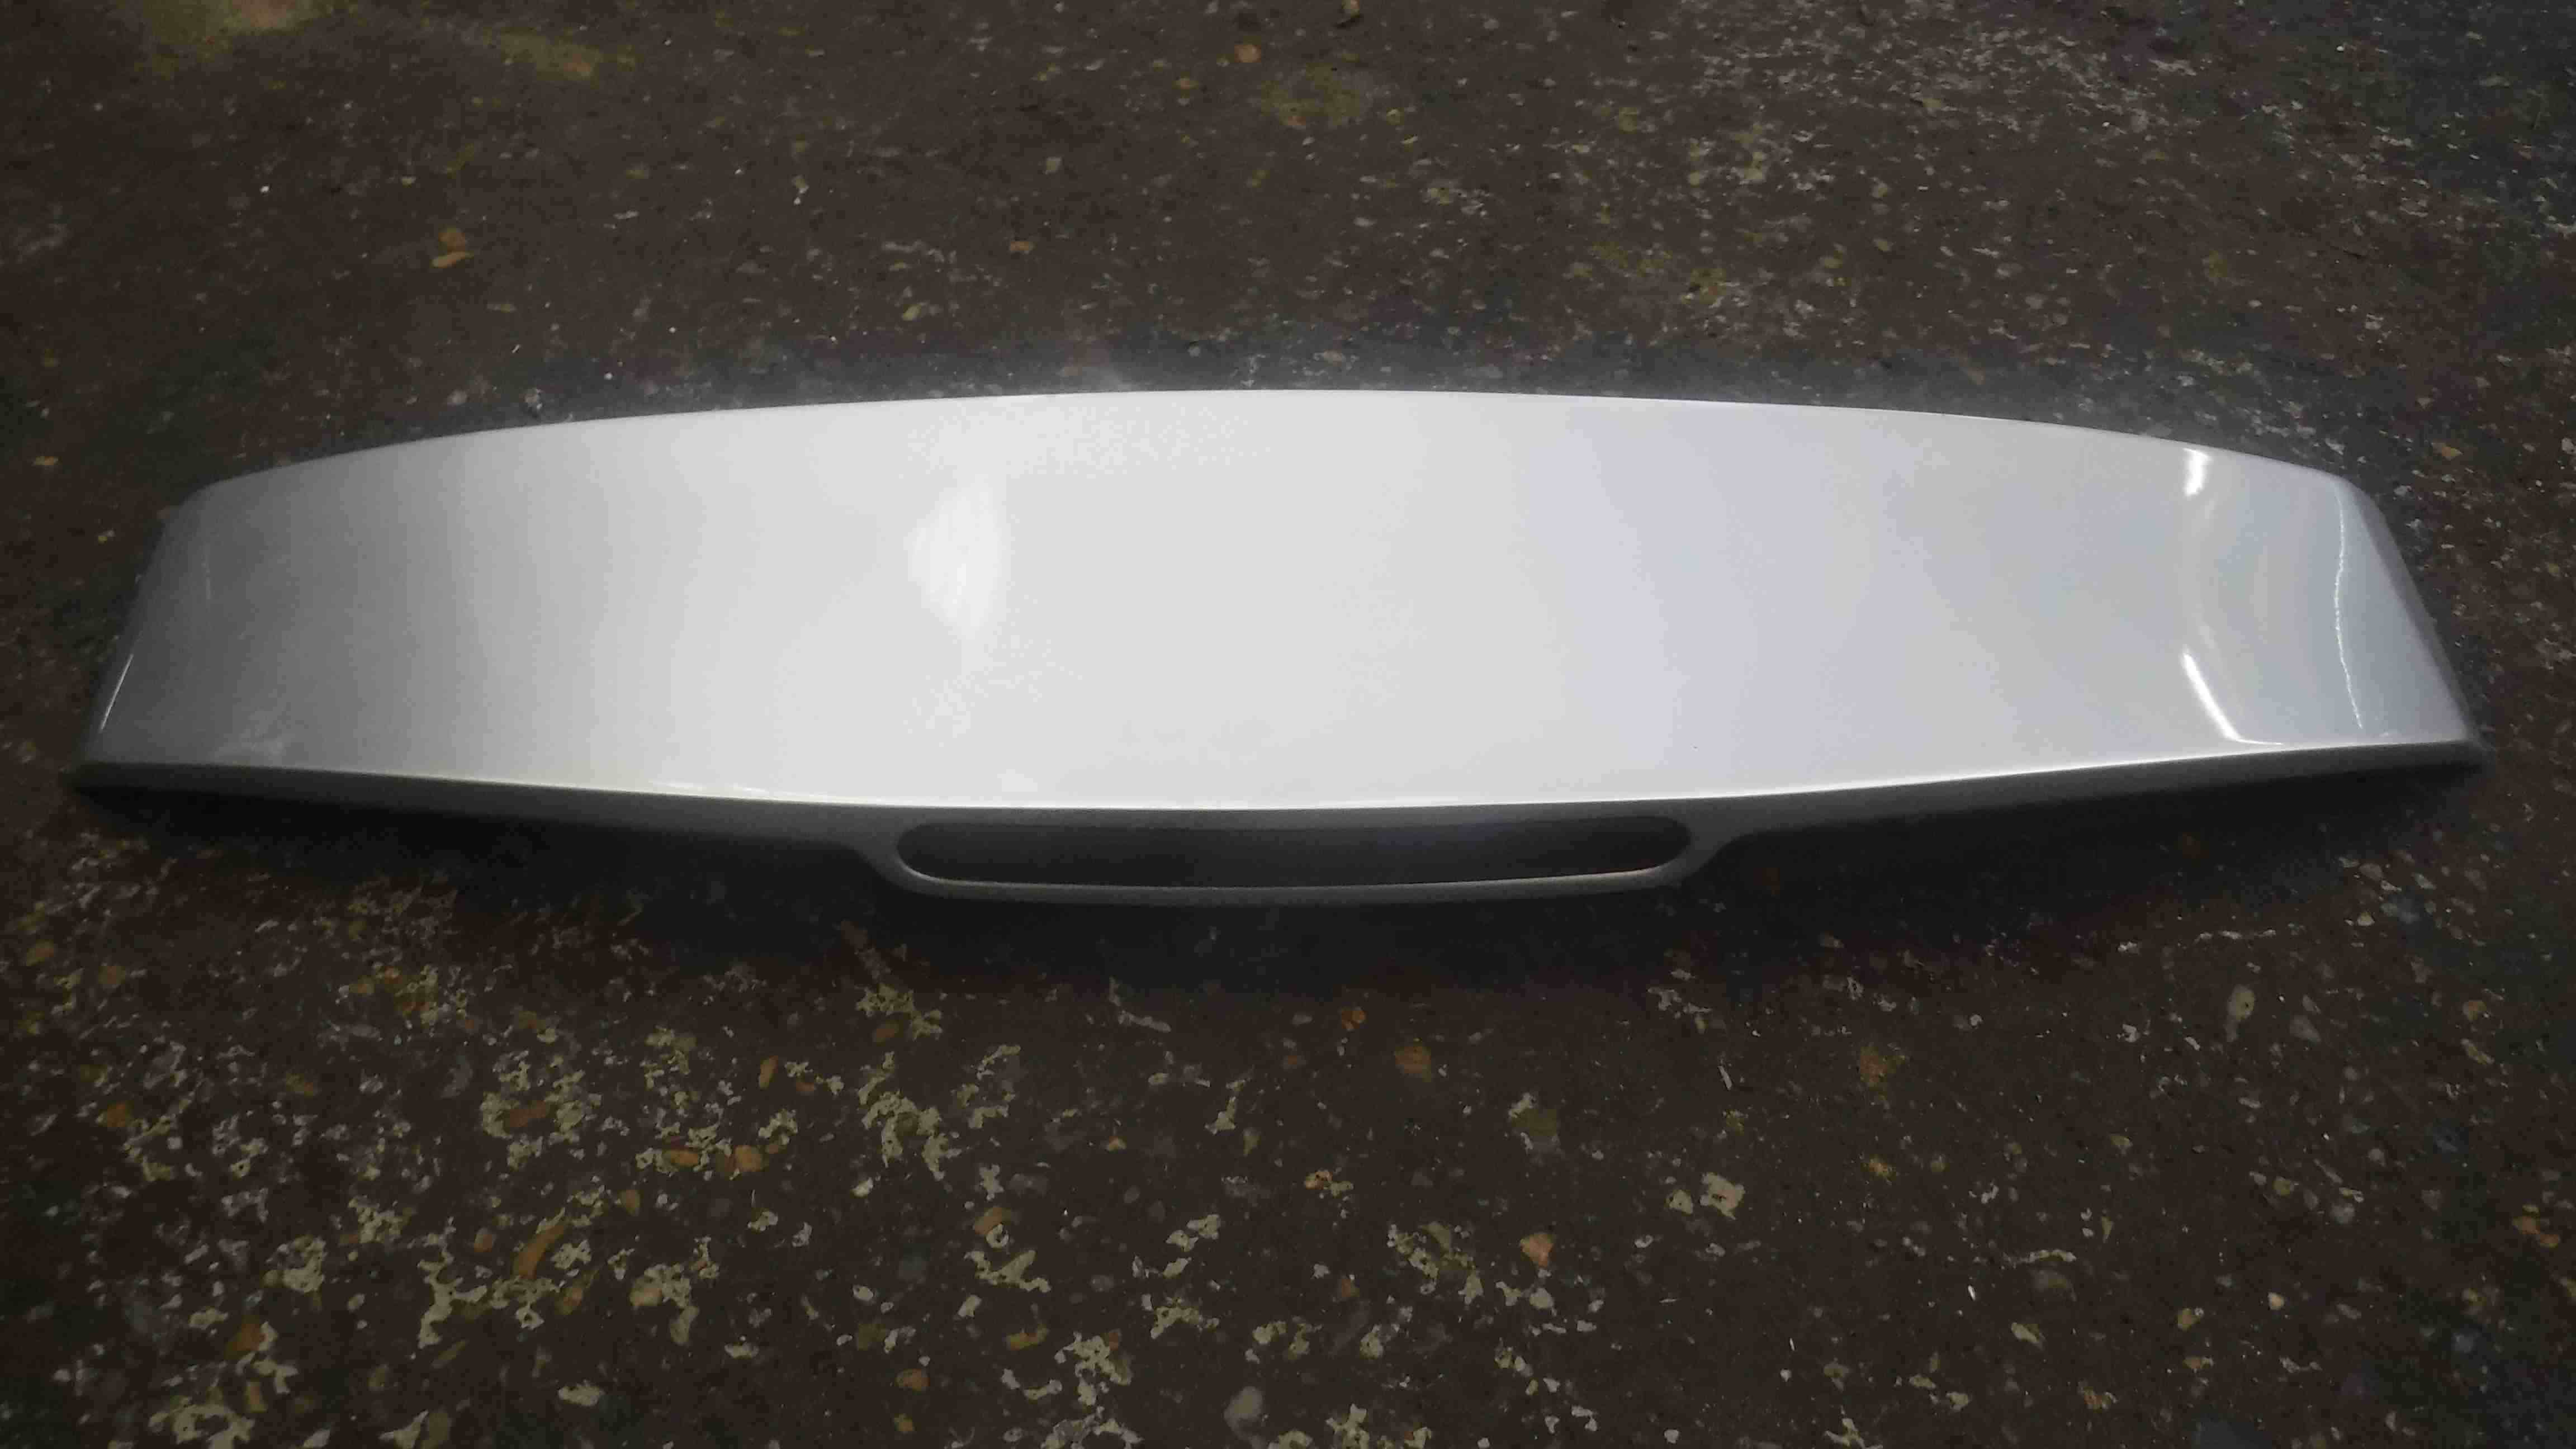 Renault Clio Sport 2001 2006 Cup 172 182 Rear Boot Tailgate Spoiler Silver 647 Store Renault Breakers Used Renault Car Parts Spares Specialist